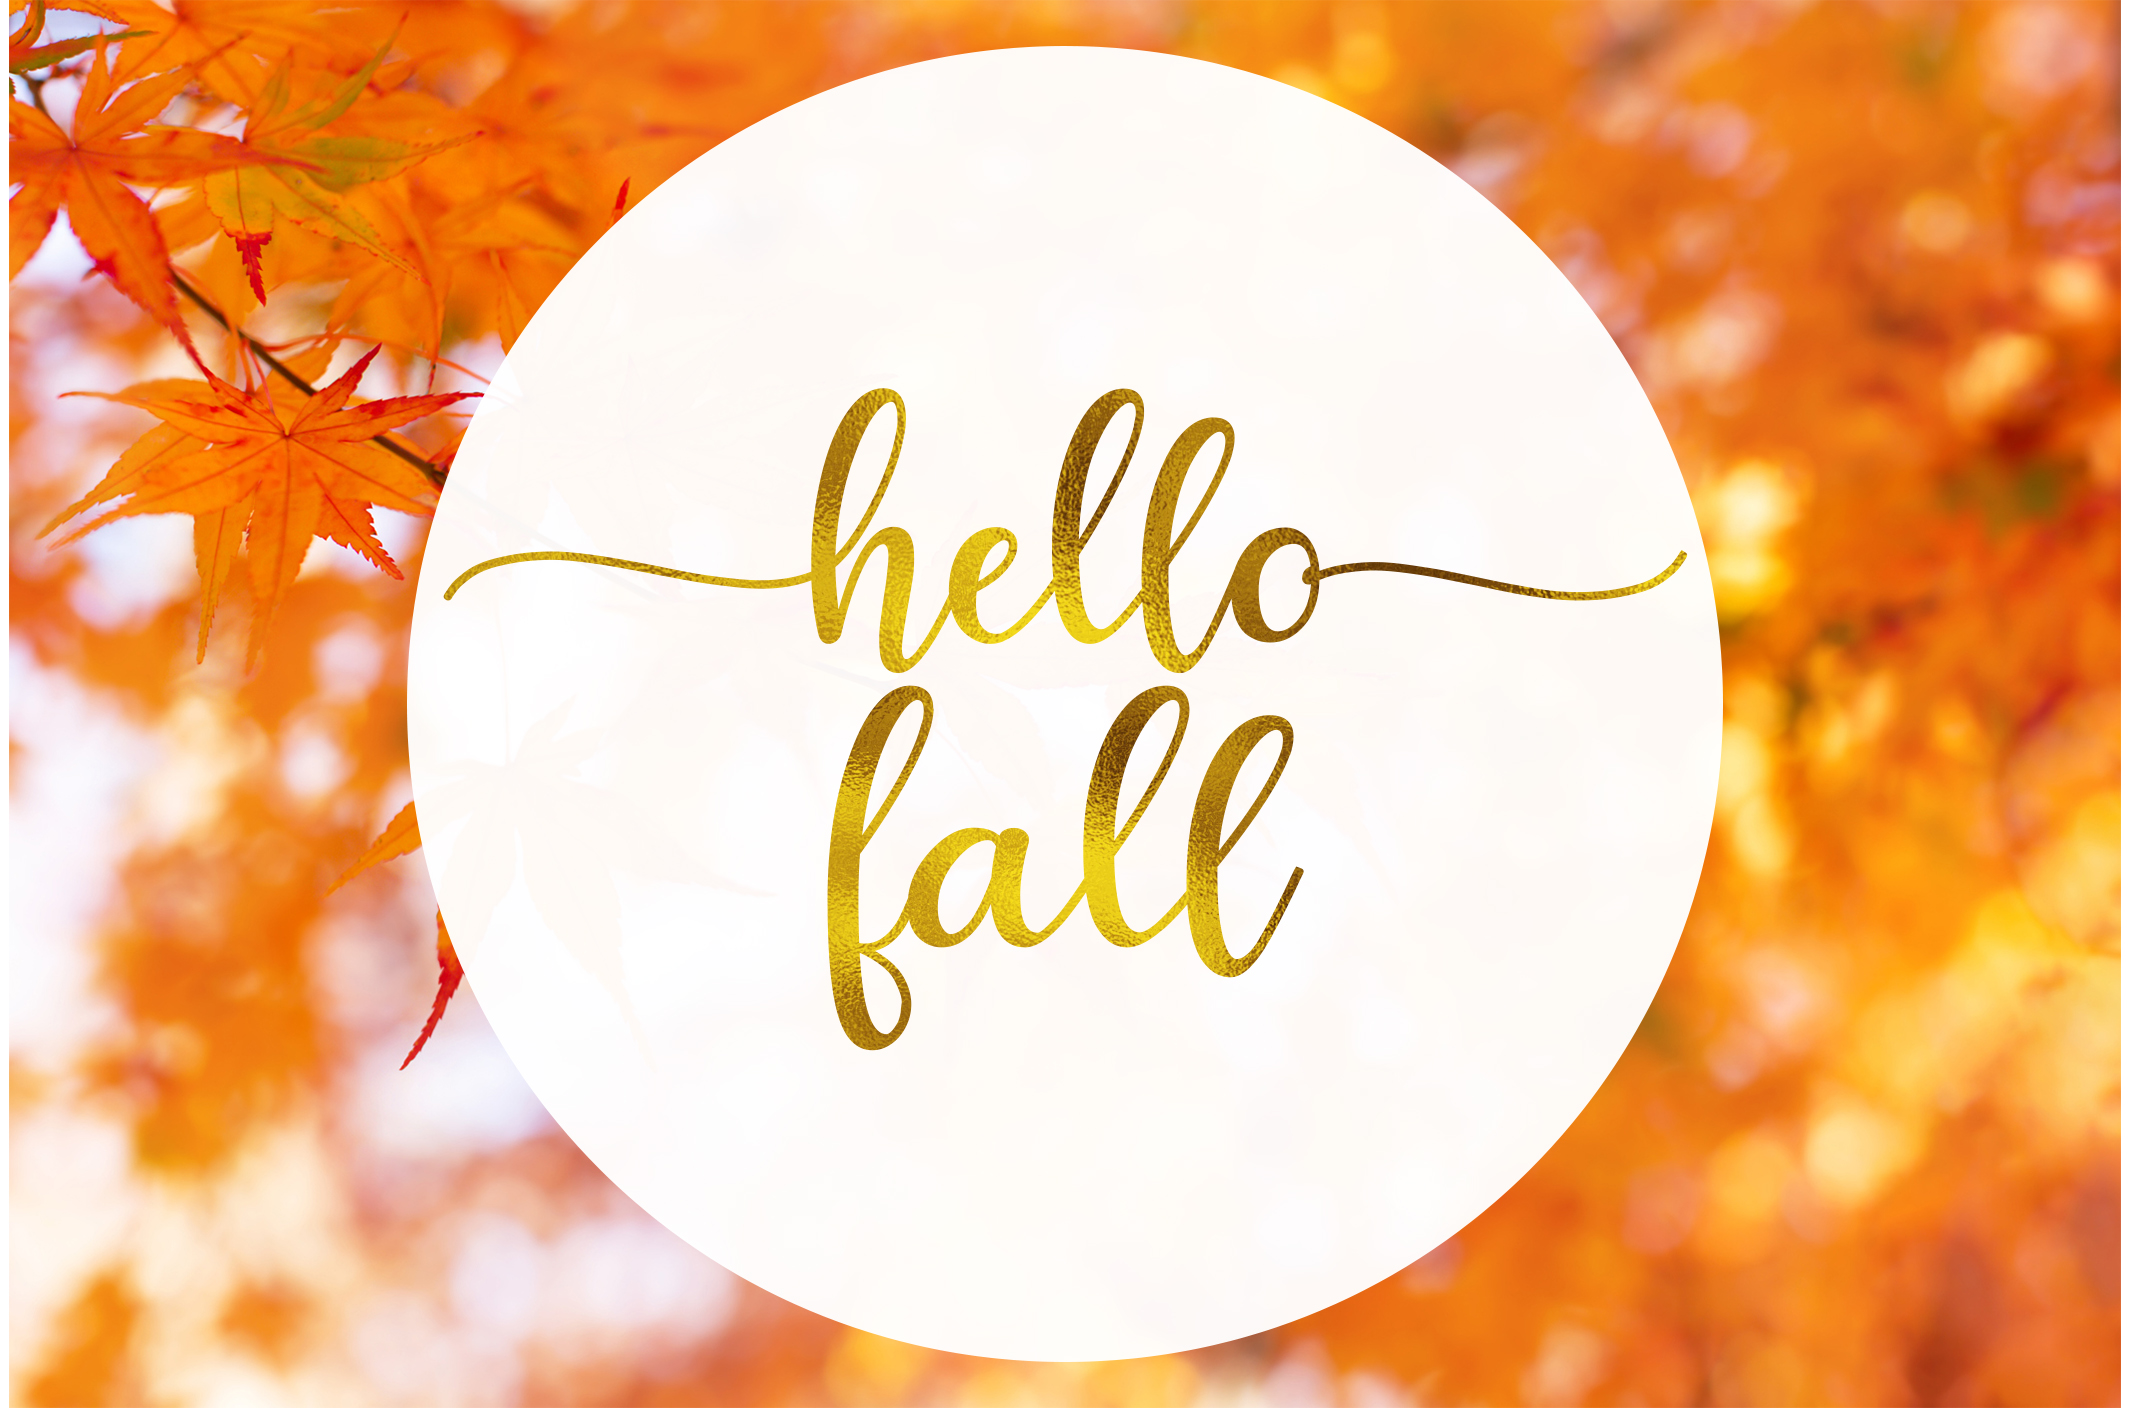 hello-fall-leaves-backgroun.jpg